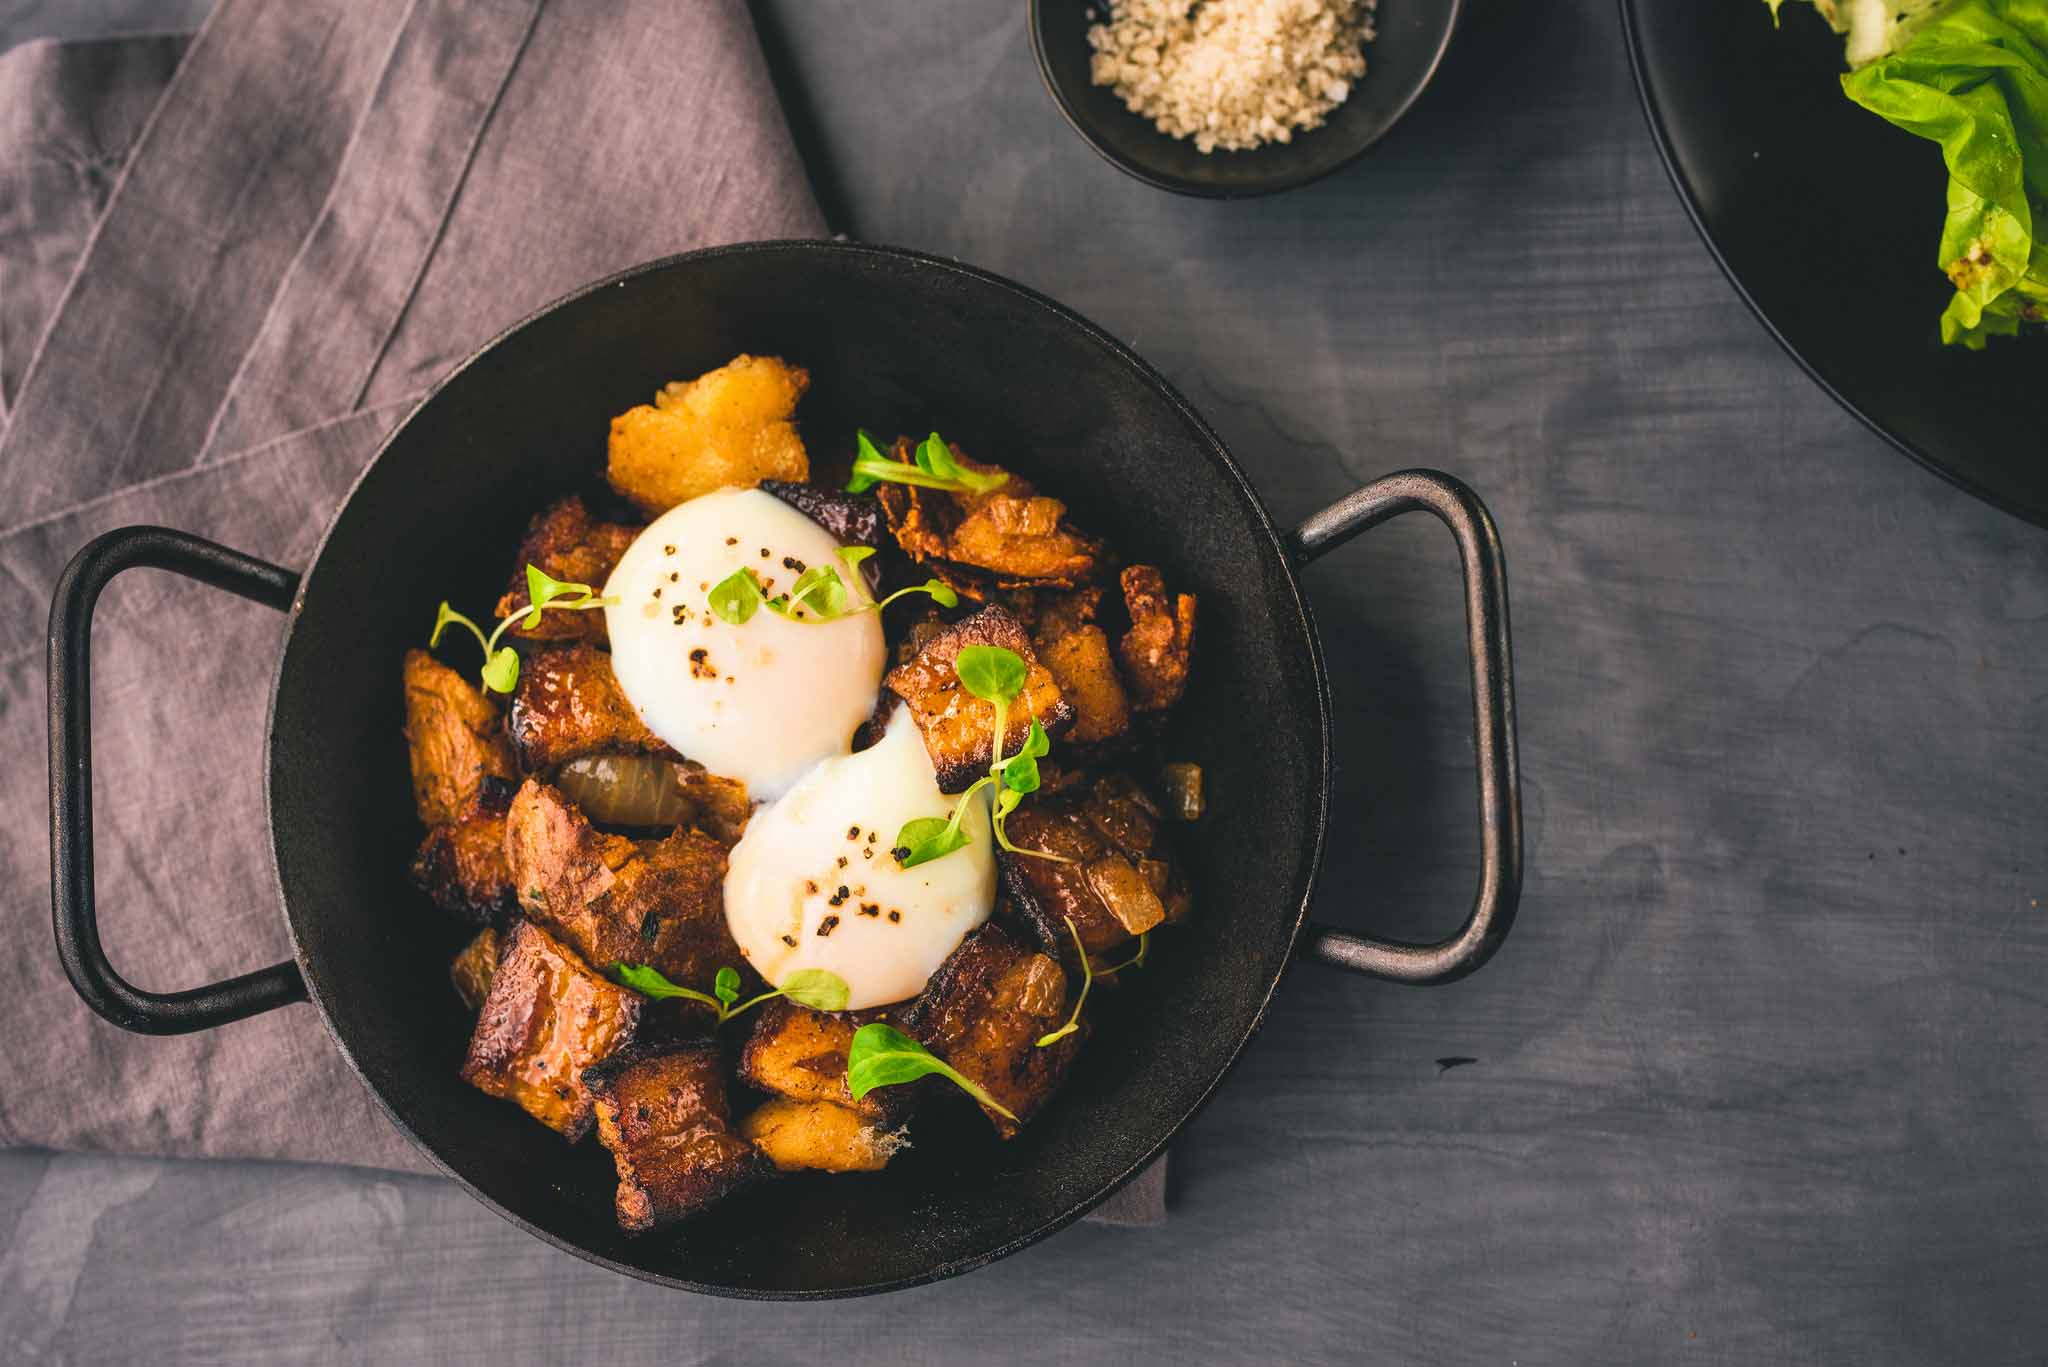 APPLE CIDER PORK BELLY HASH tarragon potato cracklins, two poached eggs